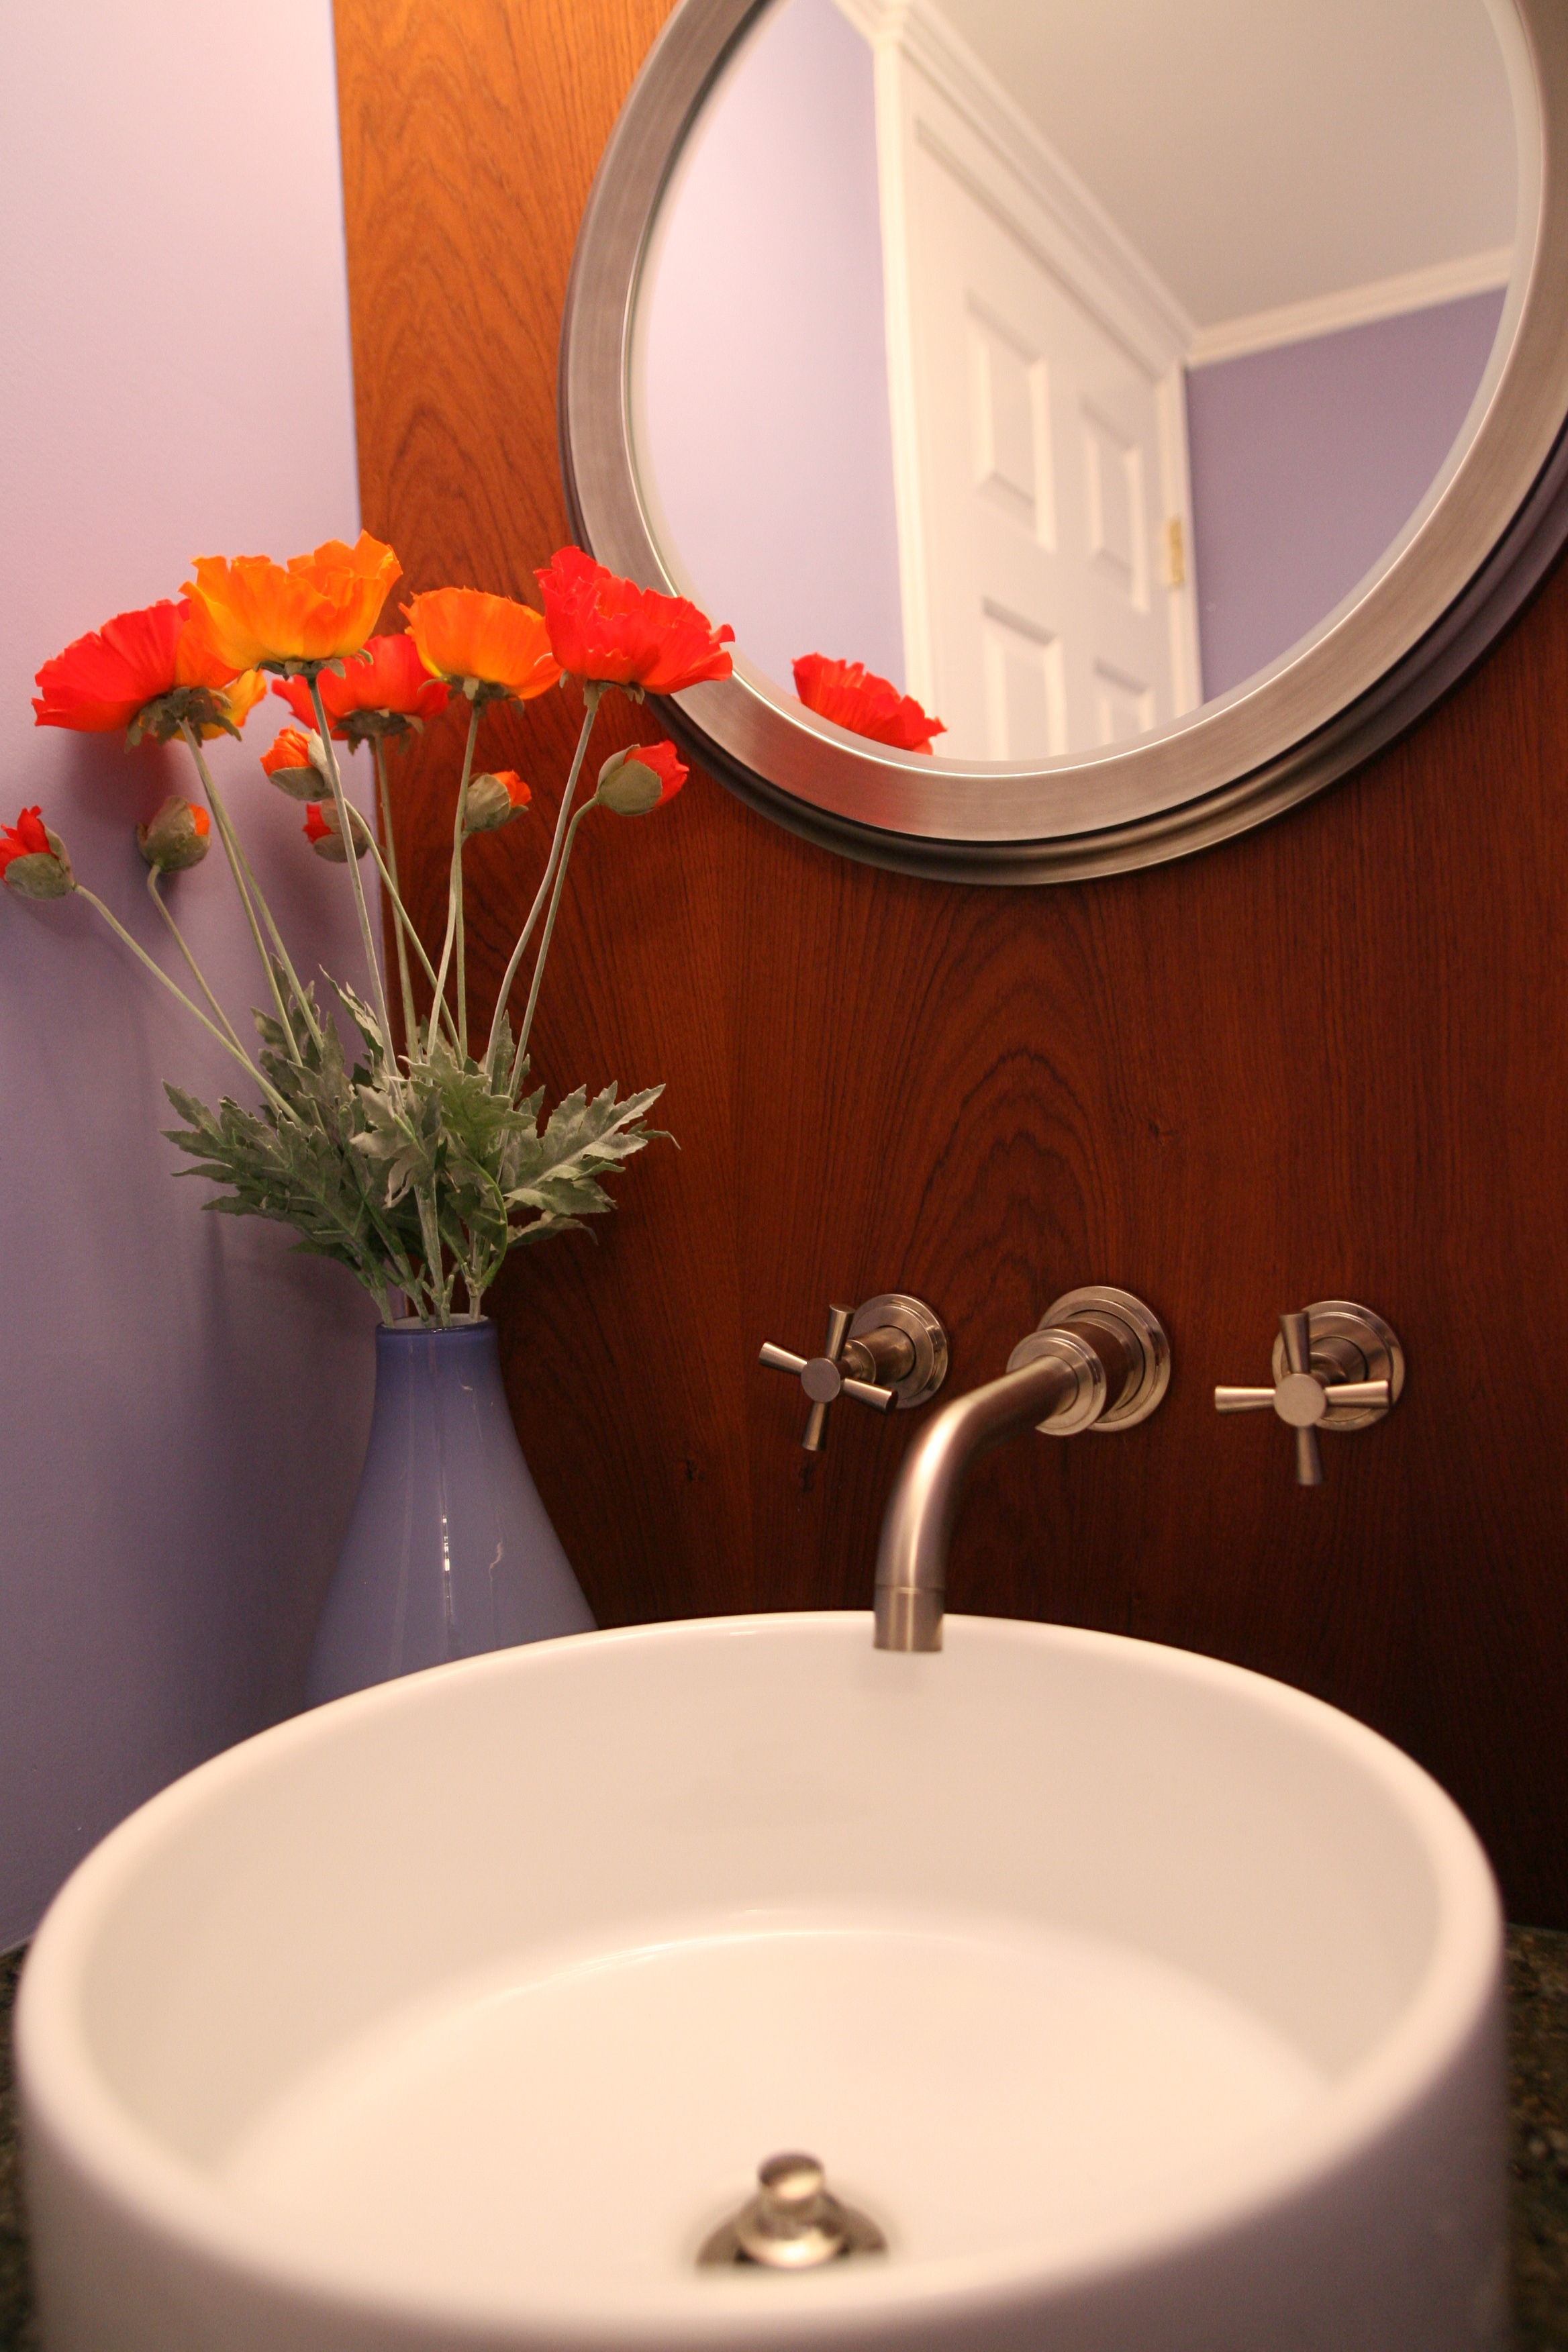 Go With the Flow Specifying plumbing fixtures that save water